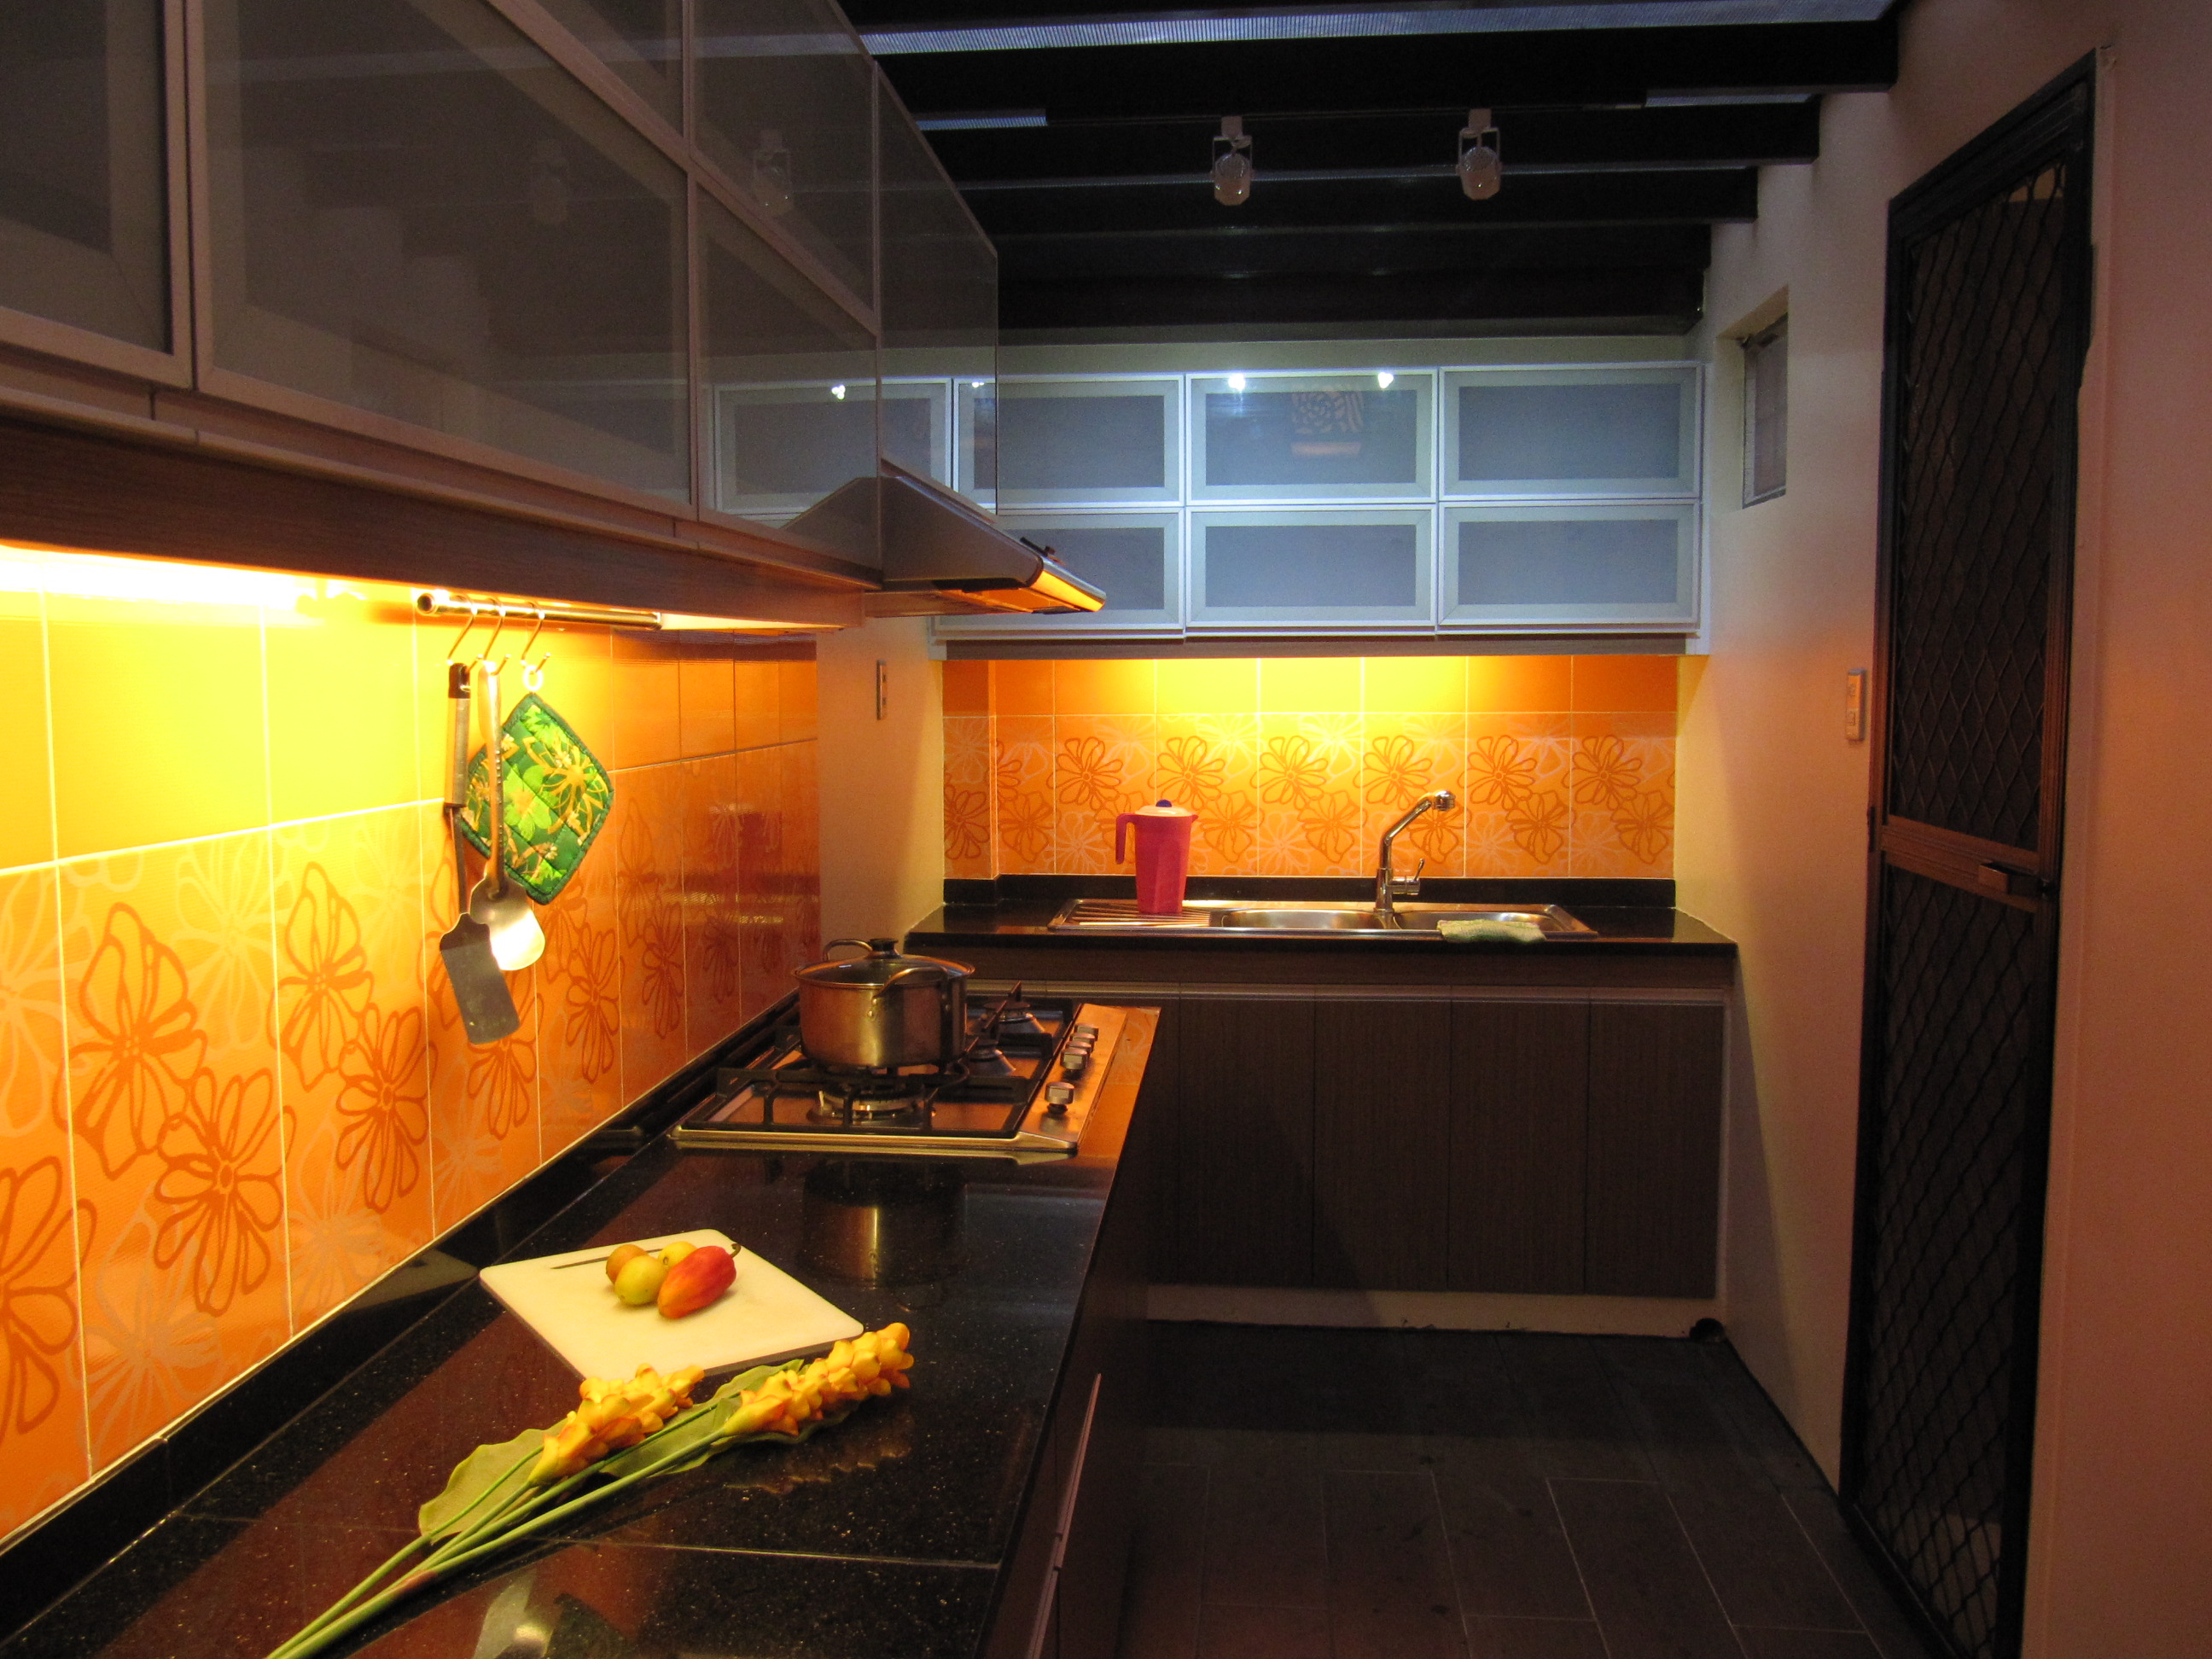 Kitchen design somerset place pasig city by anne margaret ayet san jose aniag design1528 at Kitchen design center san jose